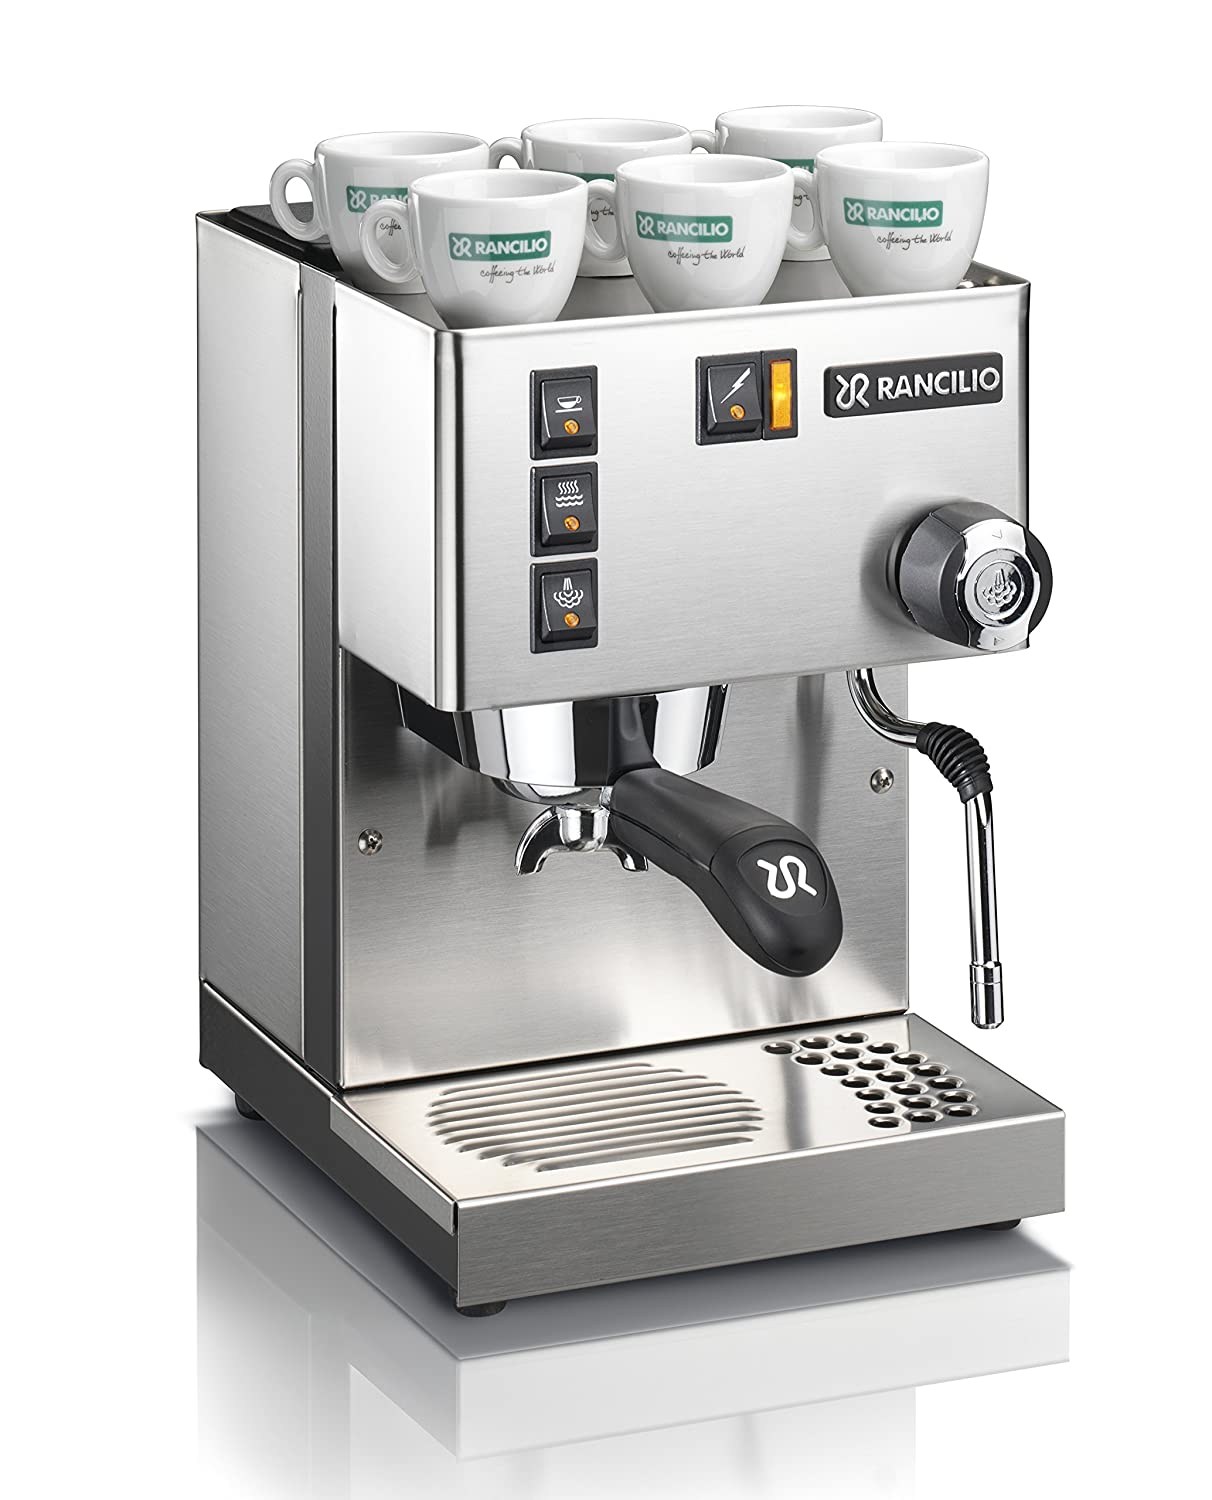 Top 10 Best Espresso Machines under $1000 (2019 Reviews & Buyer's Guide) 6